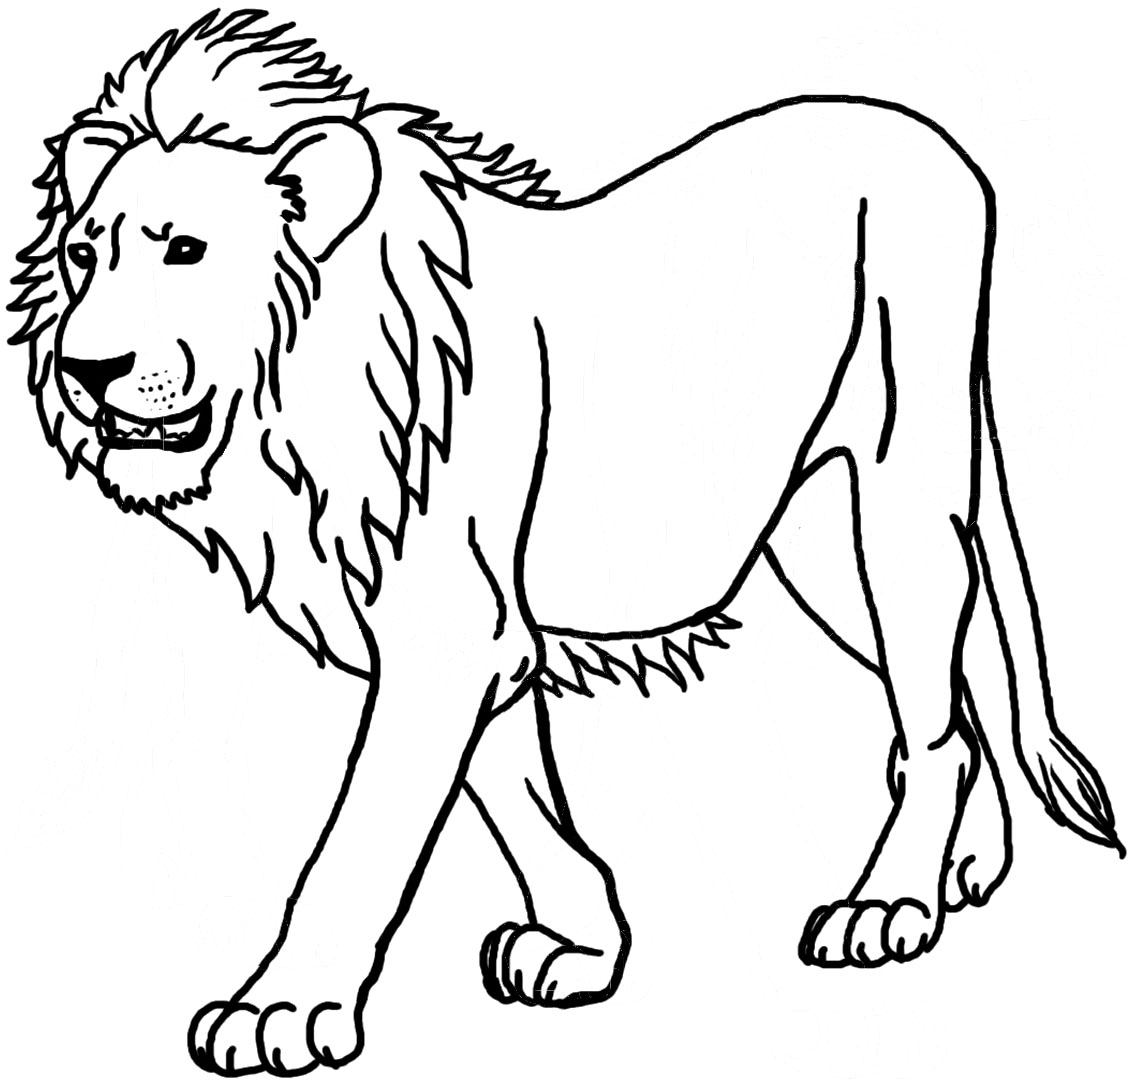 lion coloring page - 12 printable lion coloring pages print color craft